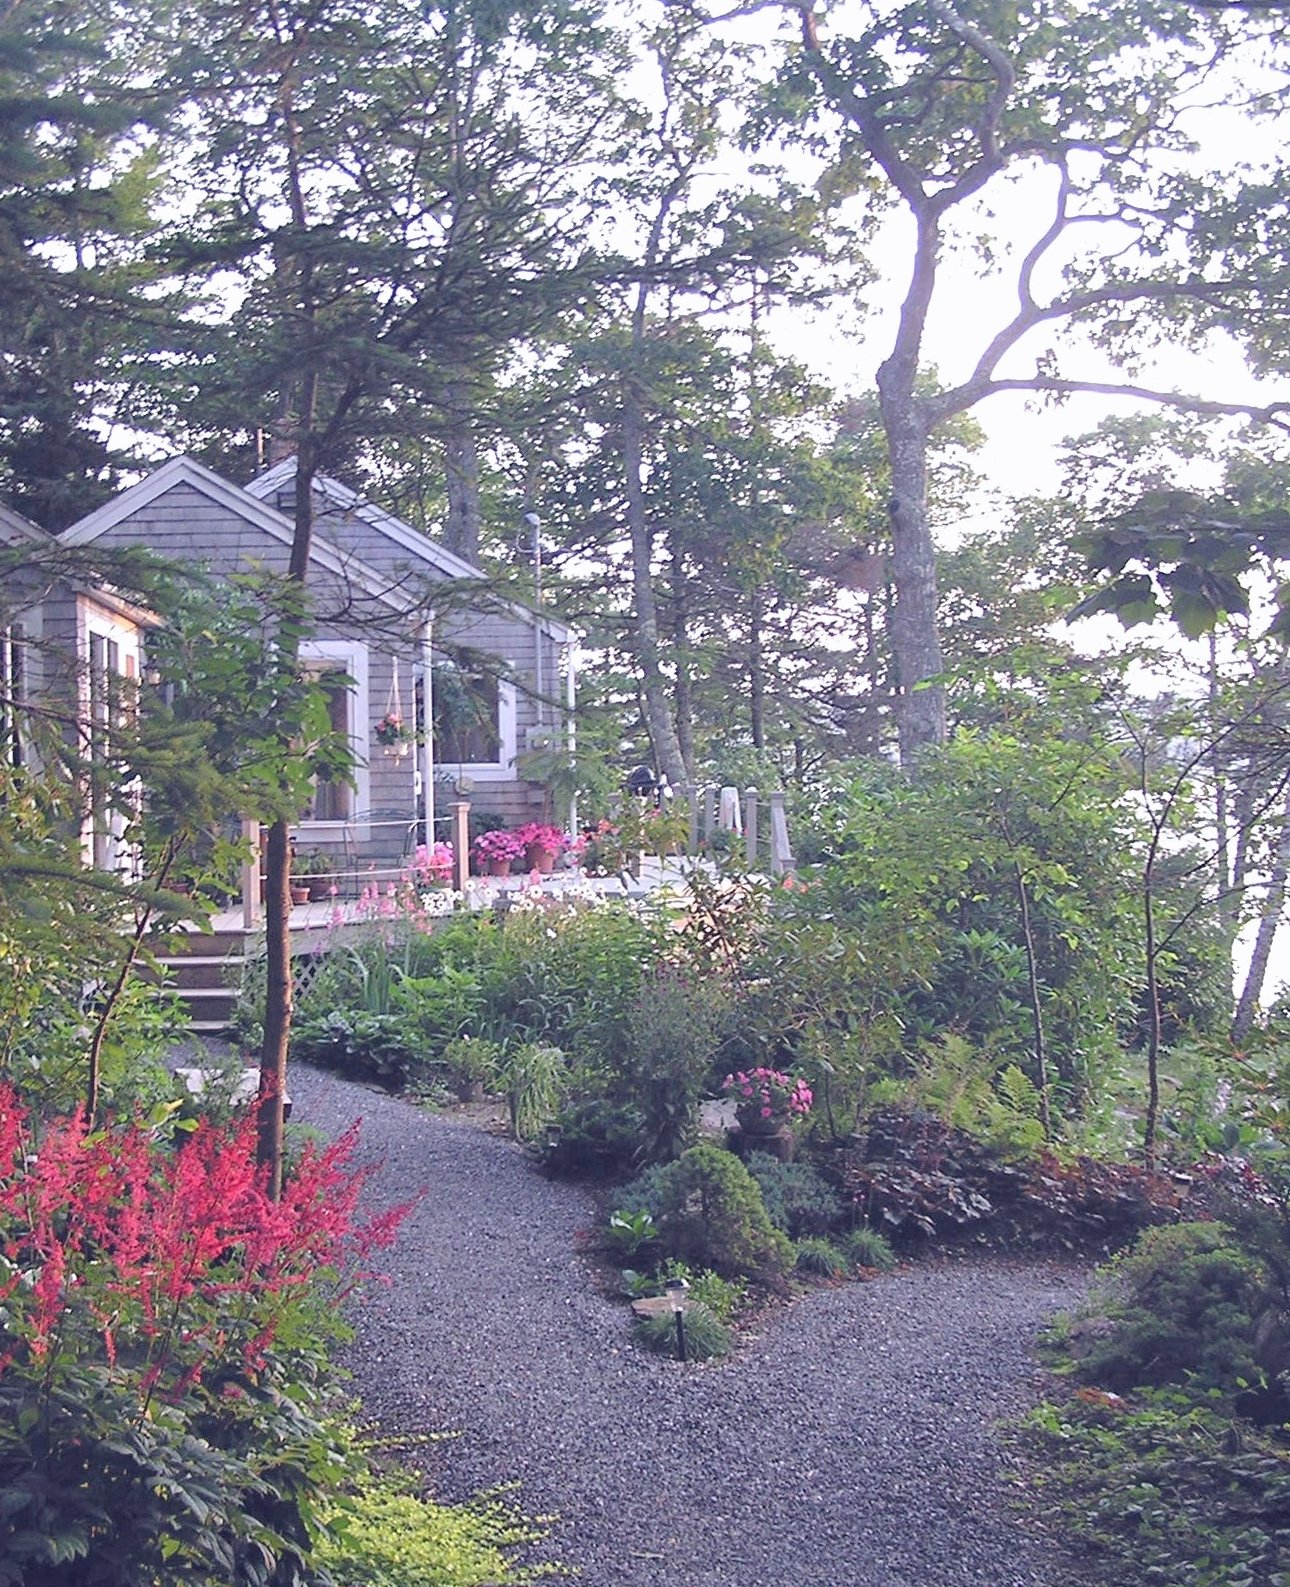 Paradise Cottage in the garden and overlooking Linekin Bay